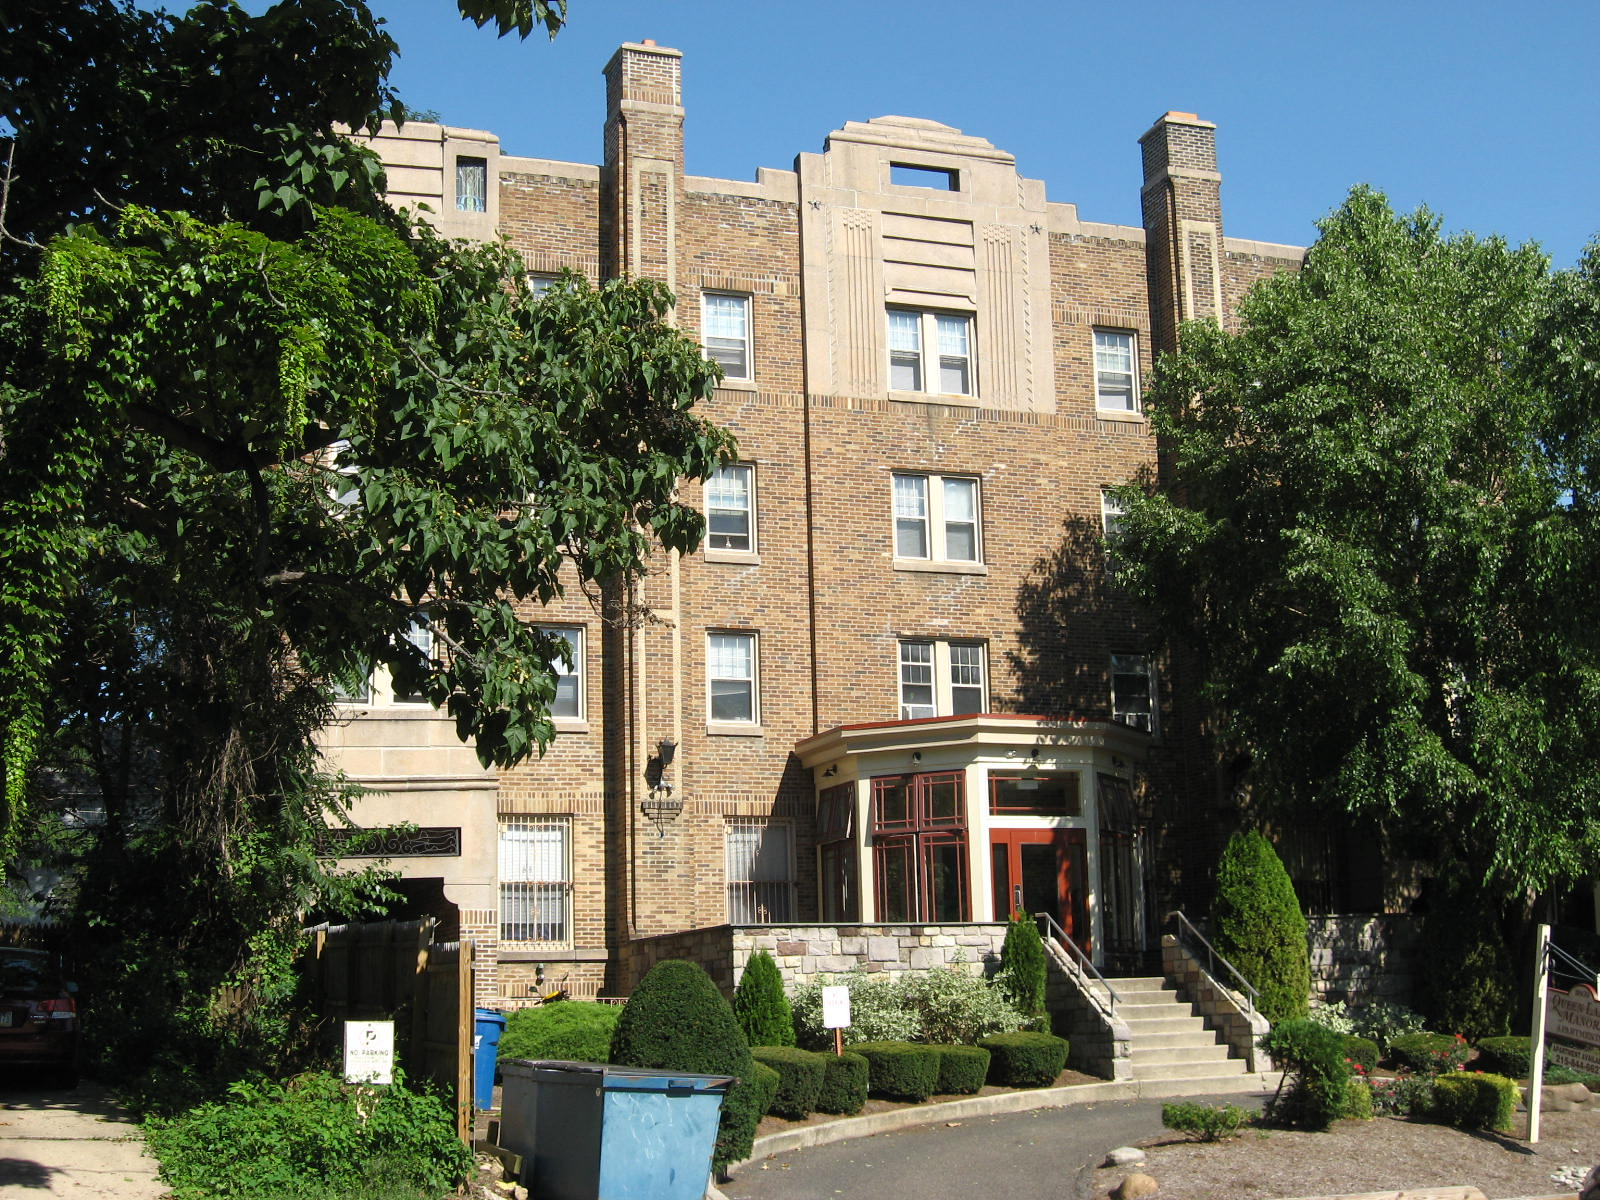 2015-10-03 East Falls tour Queen Lane Manor Apt Bldg 2